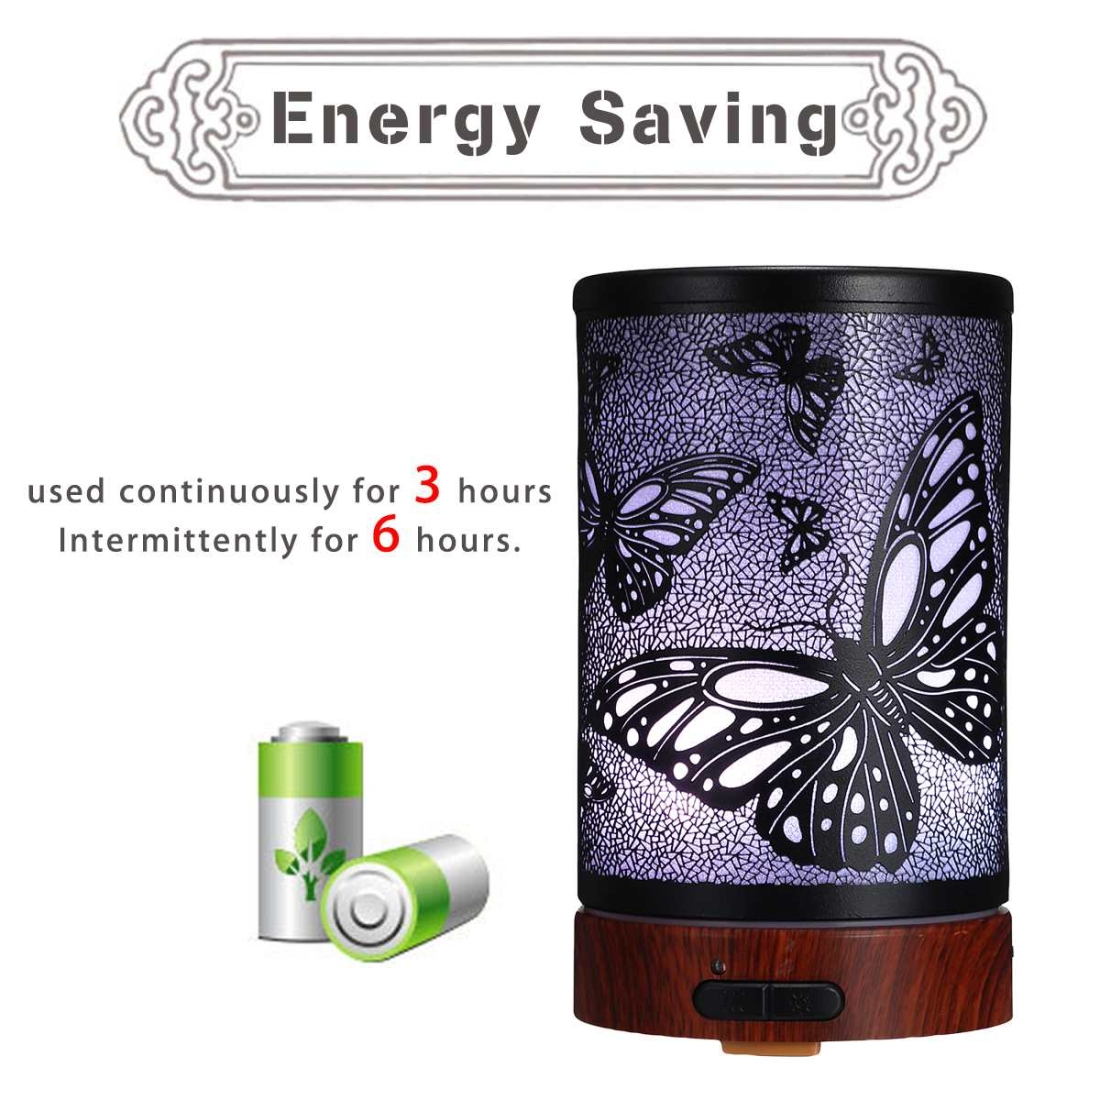 Butterfly Pattern Air Humidifier Essential Oil Diffuser Mist Maker Colorful LED Lamp Diffuser Aromatherapy Air Purifier, Plug Type: EU Plug (Black)